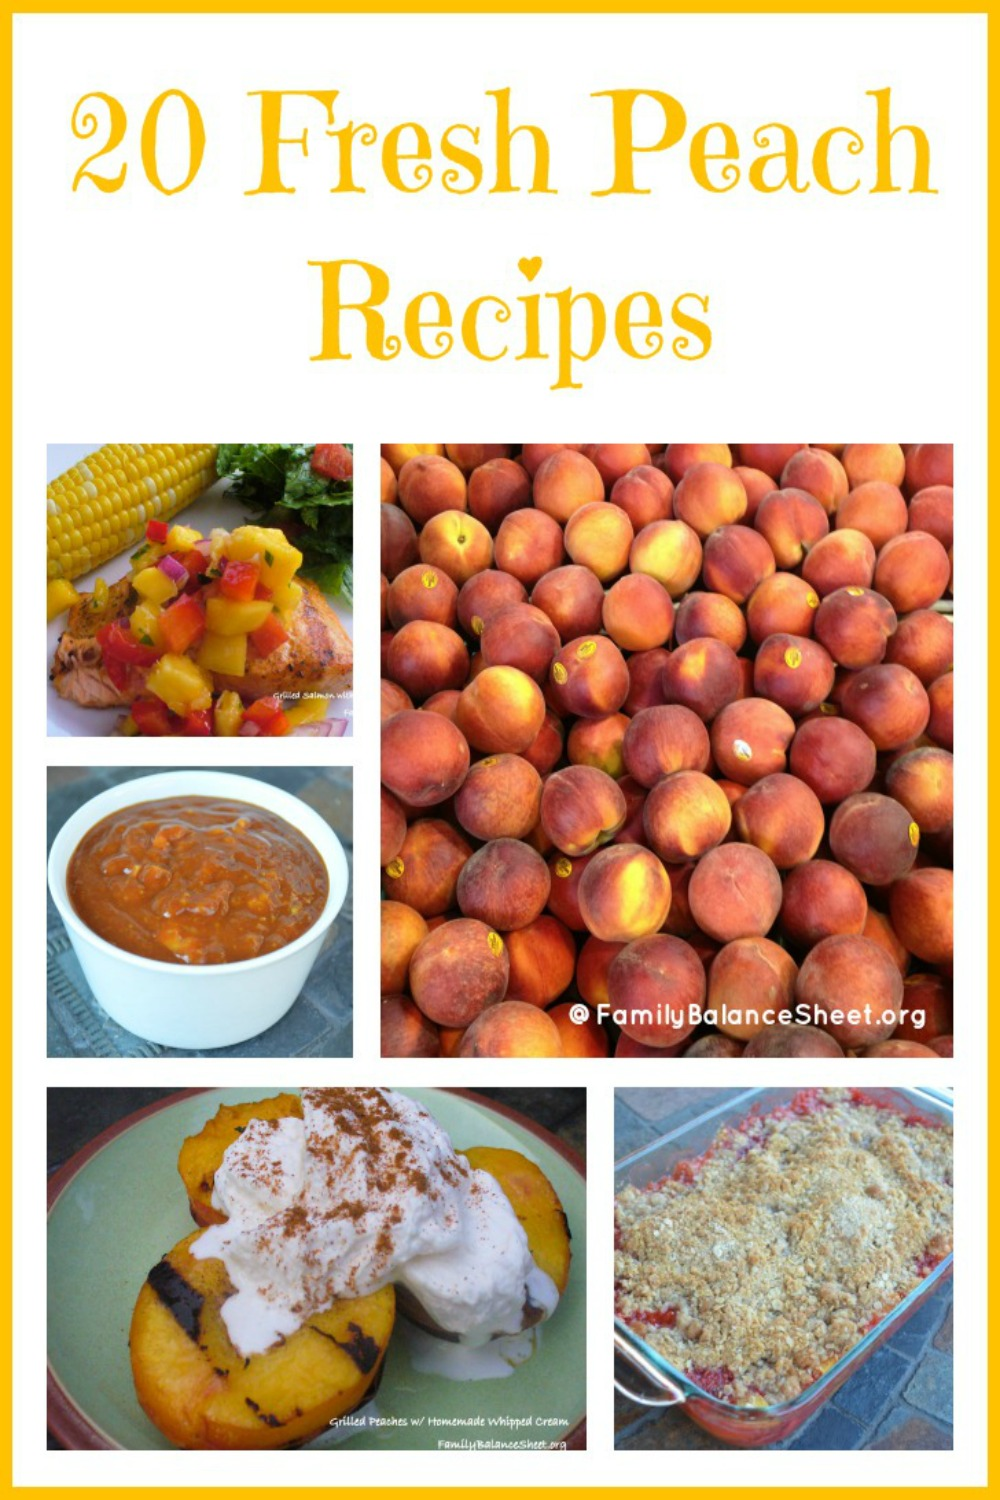 20 fresh peach recipes